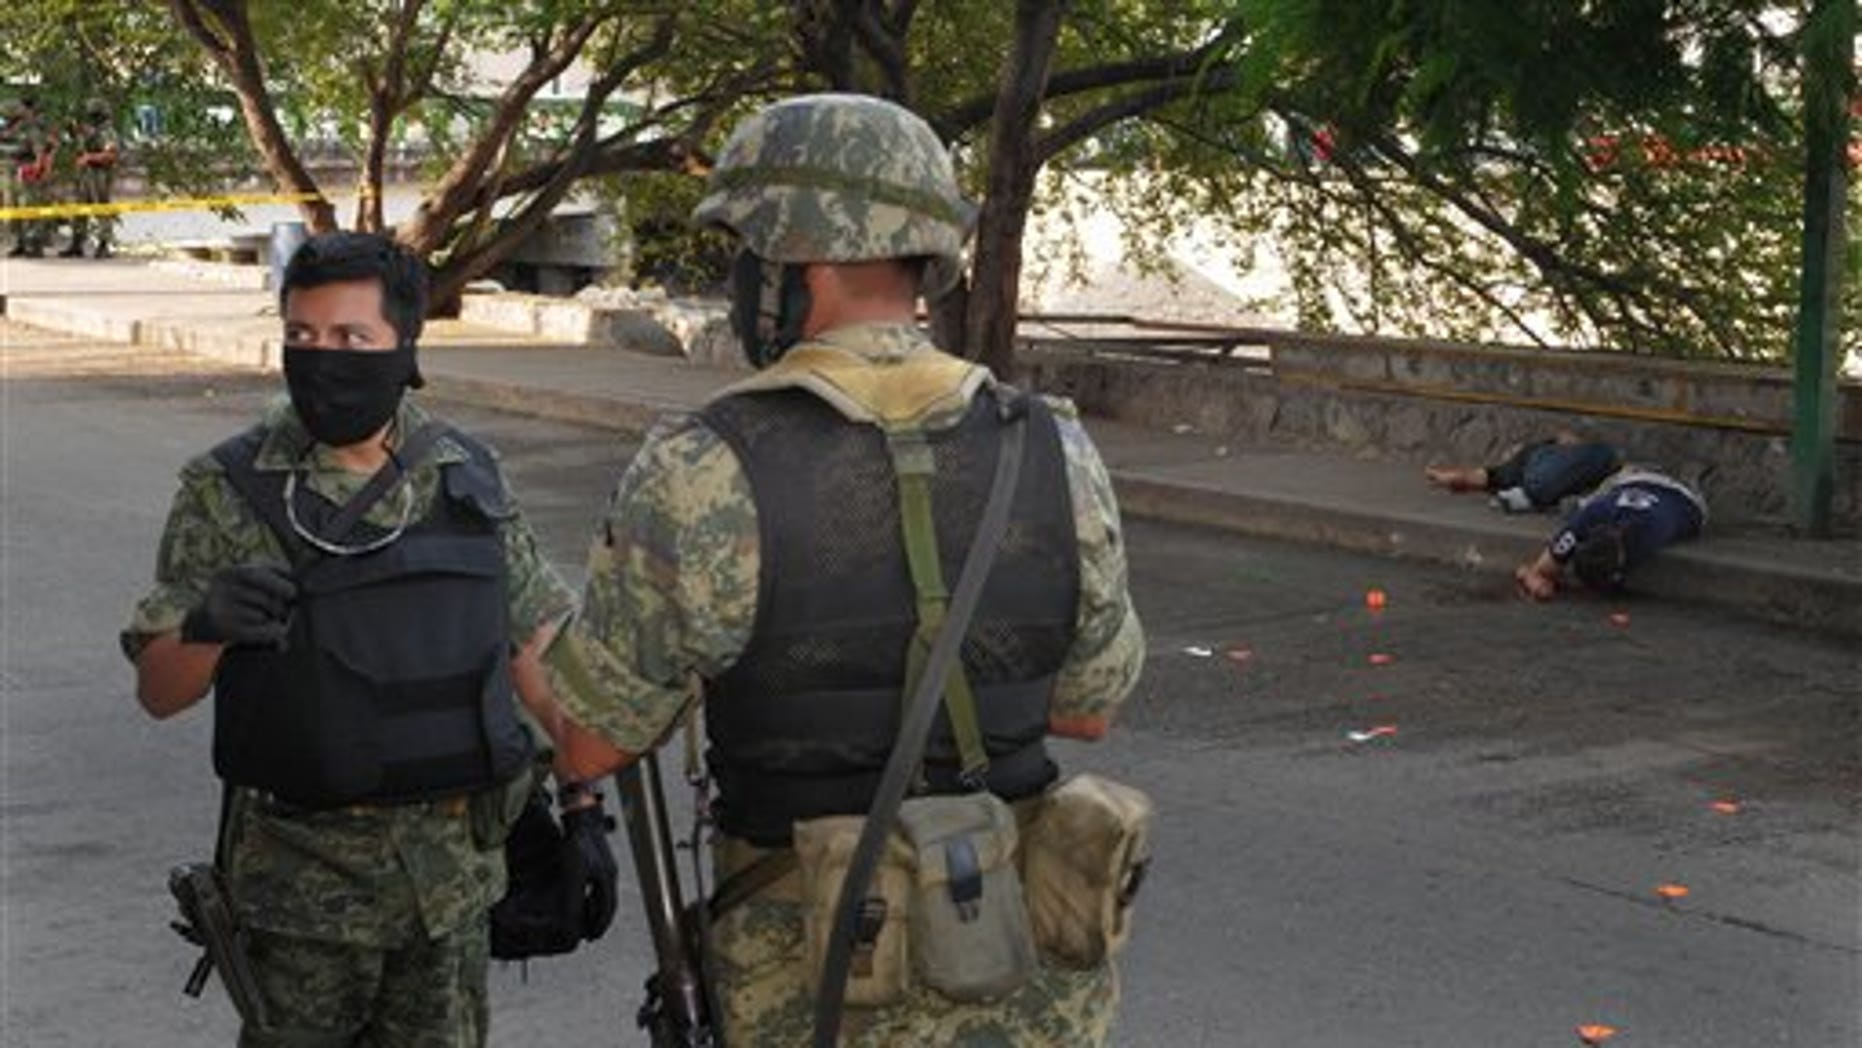 Jan. 8, 2011: Soldiers stand near the bodies of two men lying on the sidewalk after they were killed by gunmen in Acapulco, Mexico.